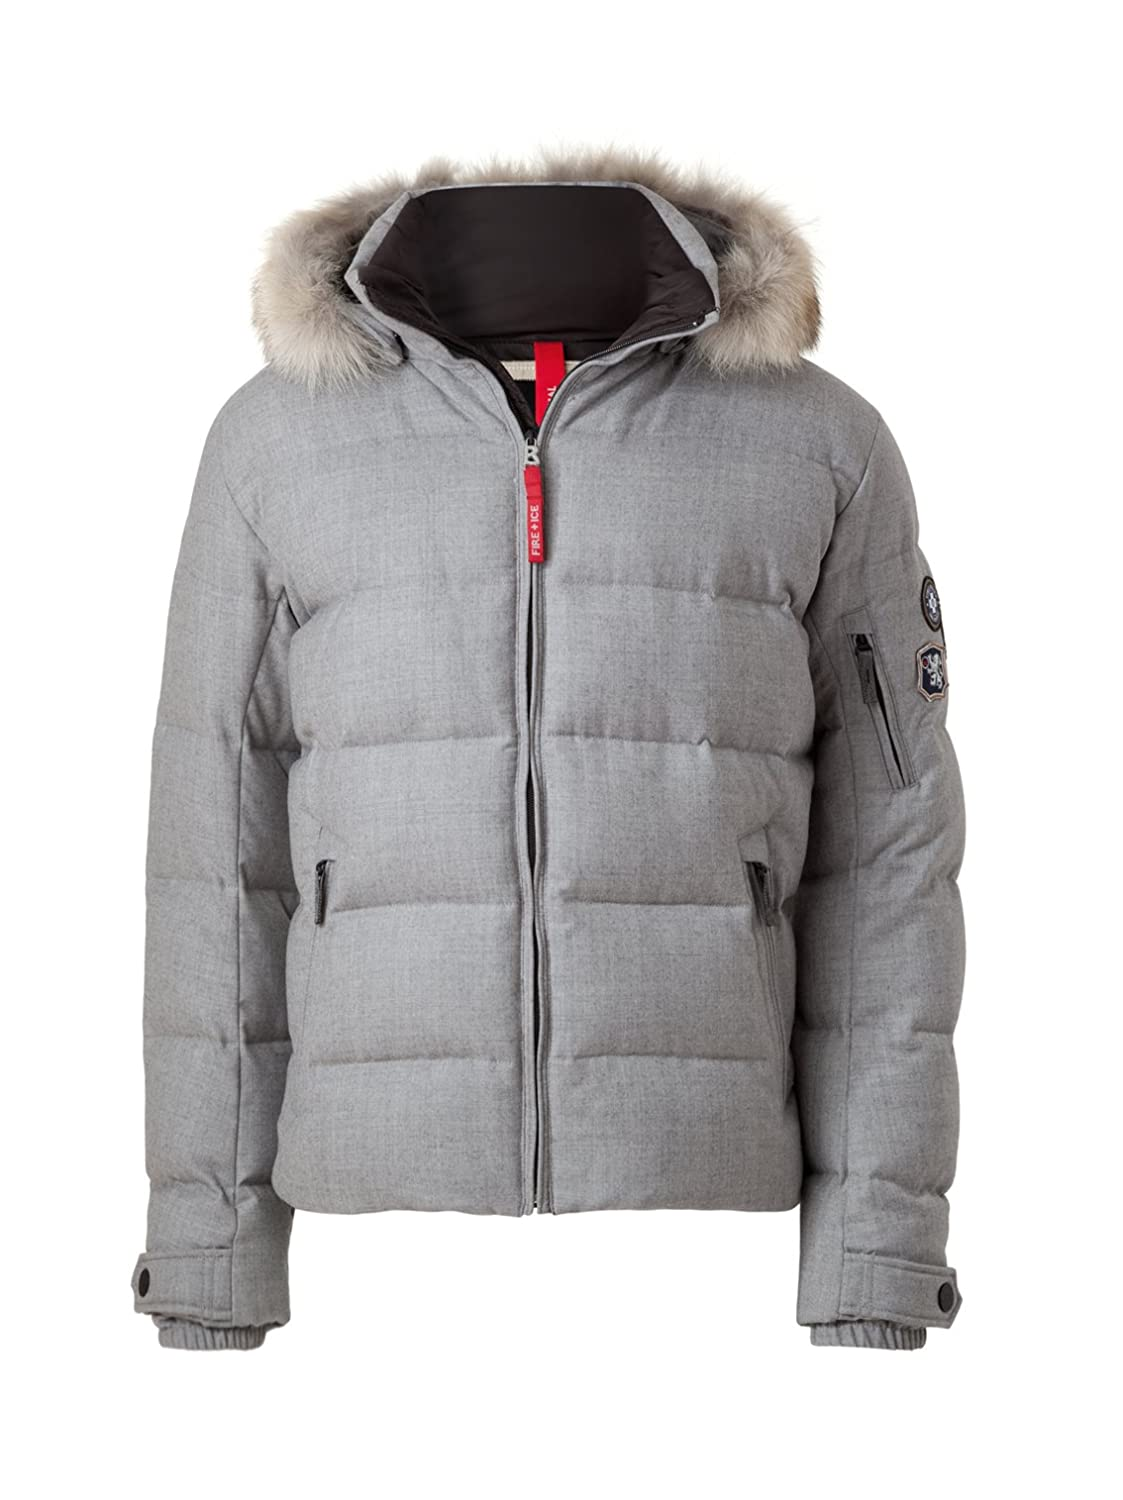 Bogner Fire + Ice Herren Jacke Luca-D online kaufen